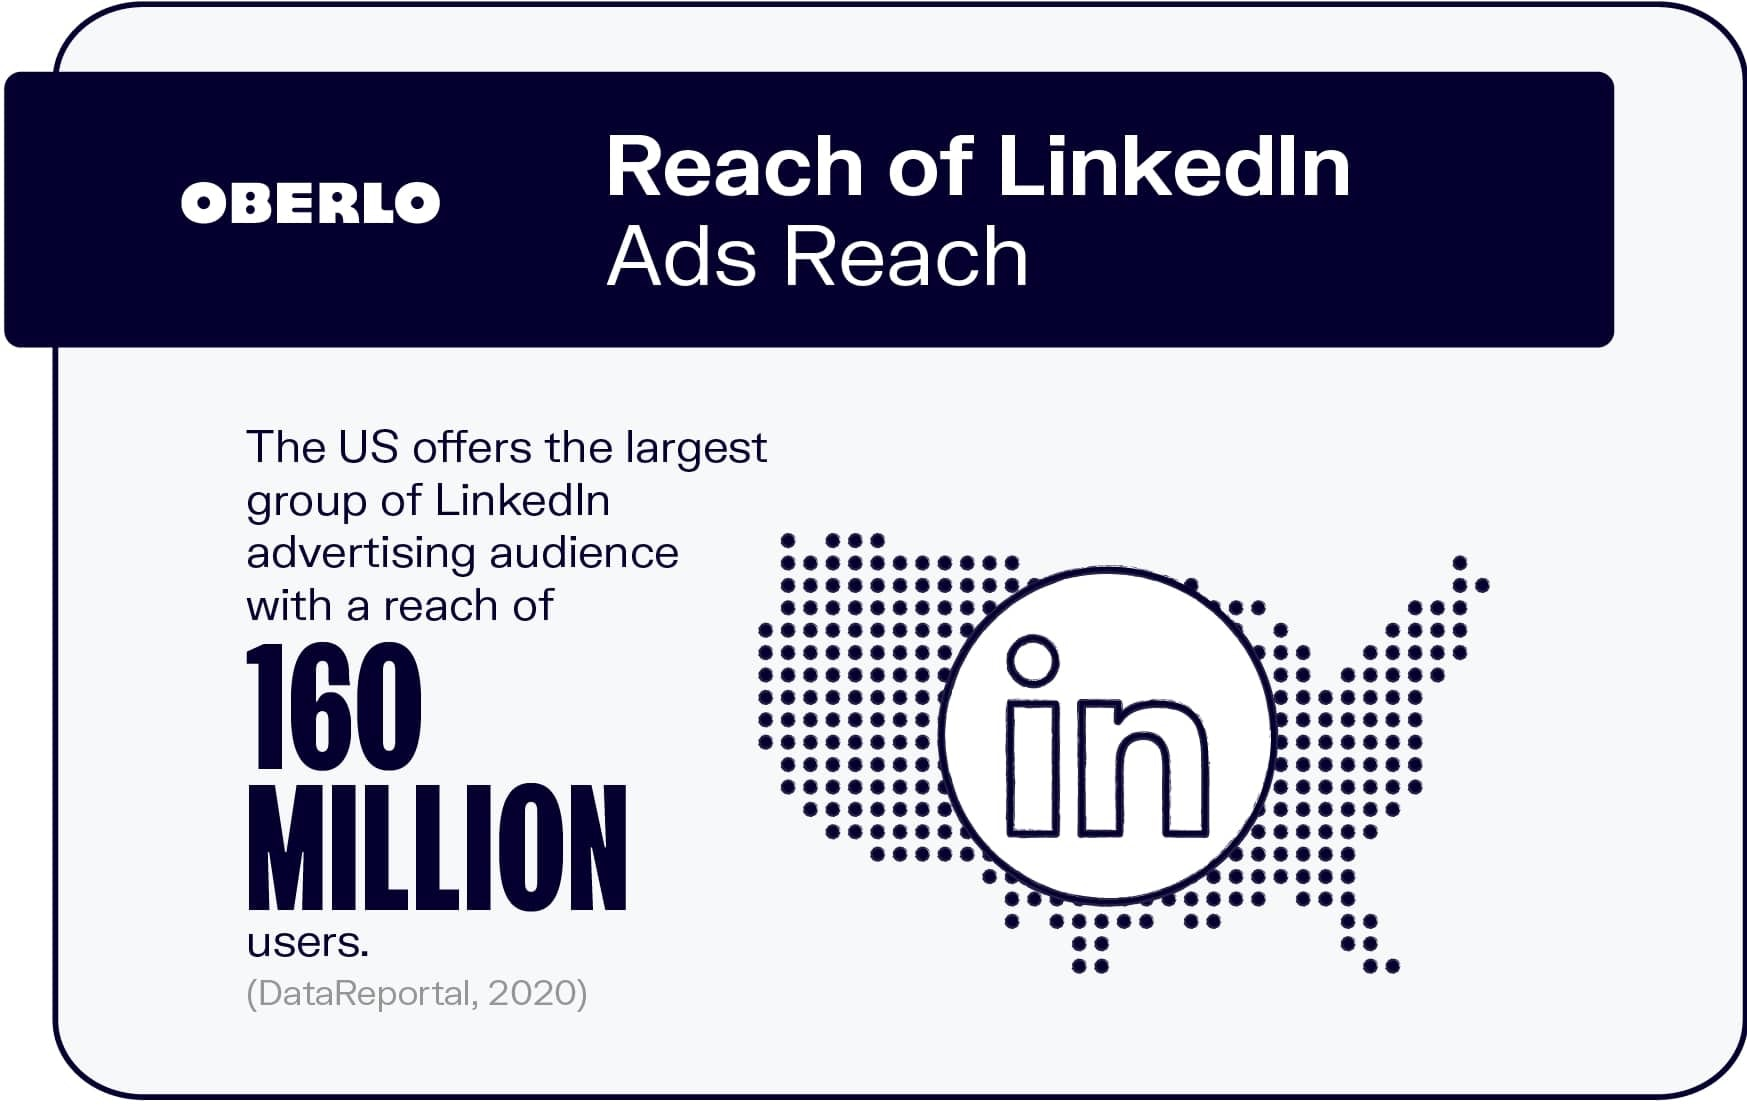 Reach of LinkedIn Ads